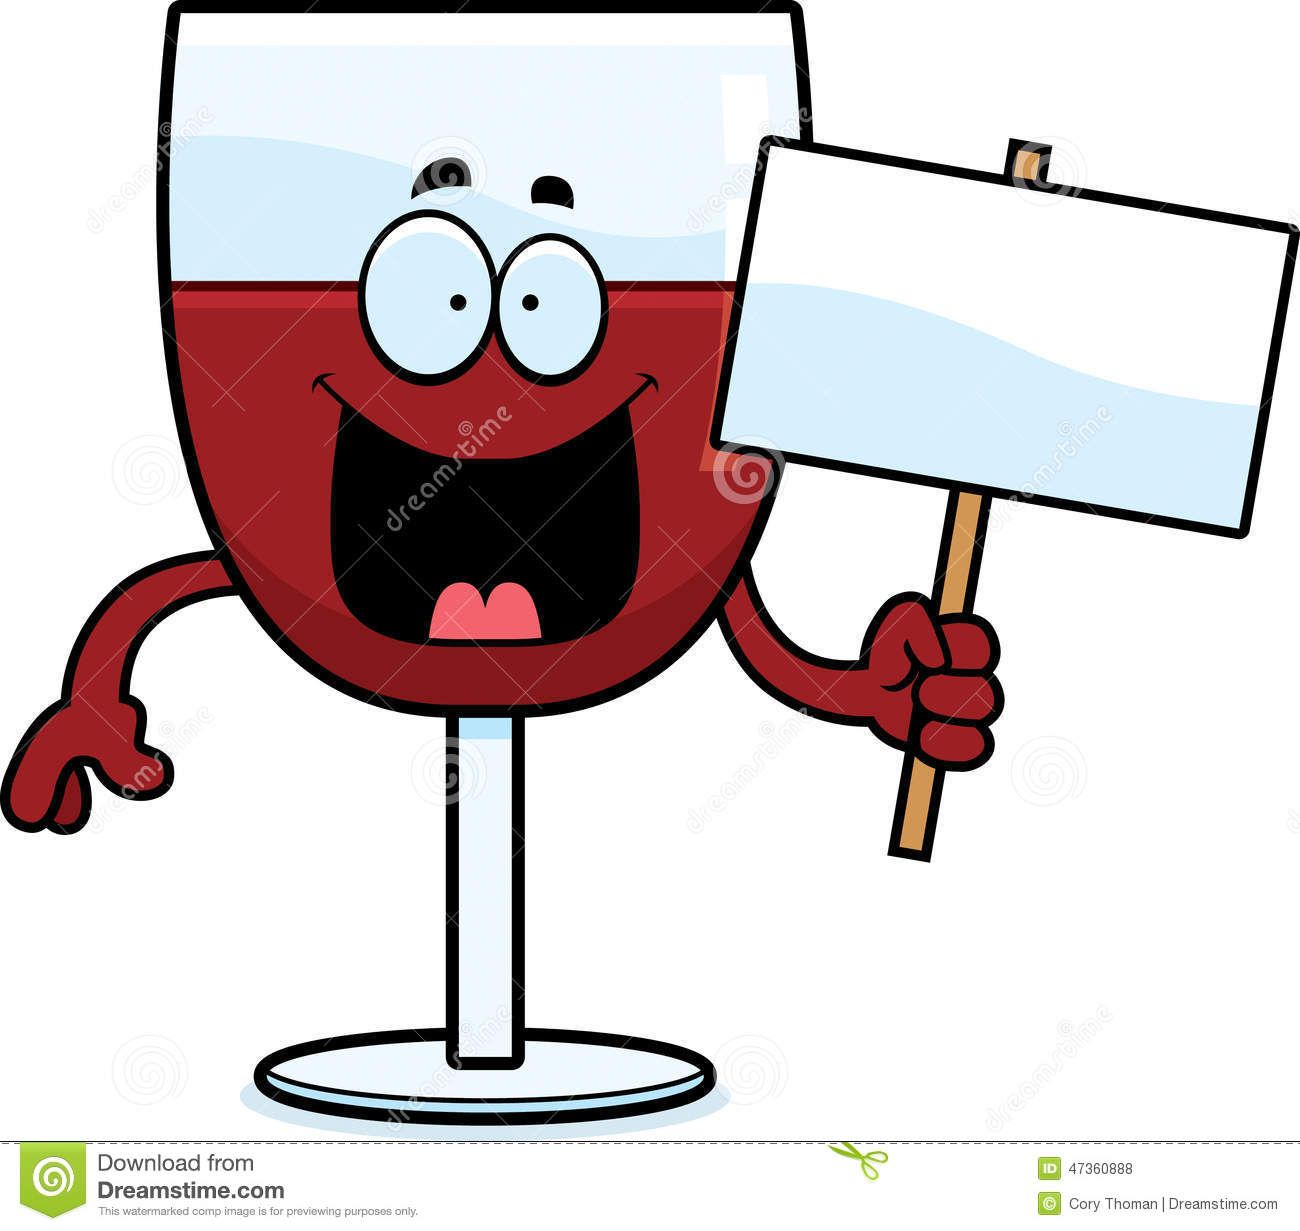 cartoon illustration of a glass of wine holding a sign.